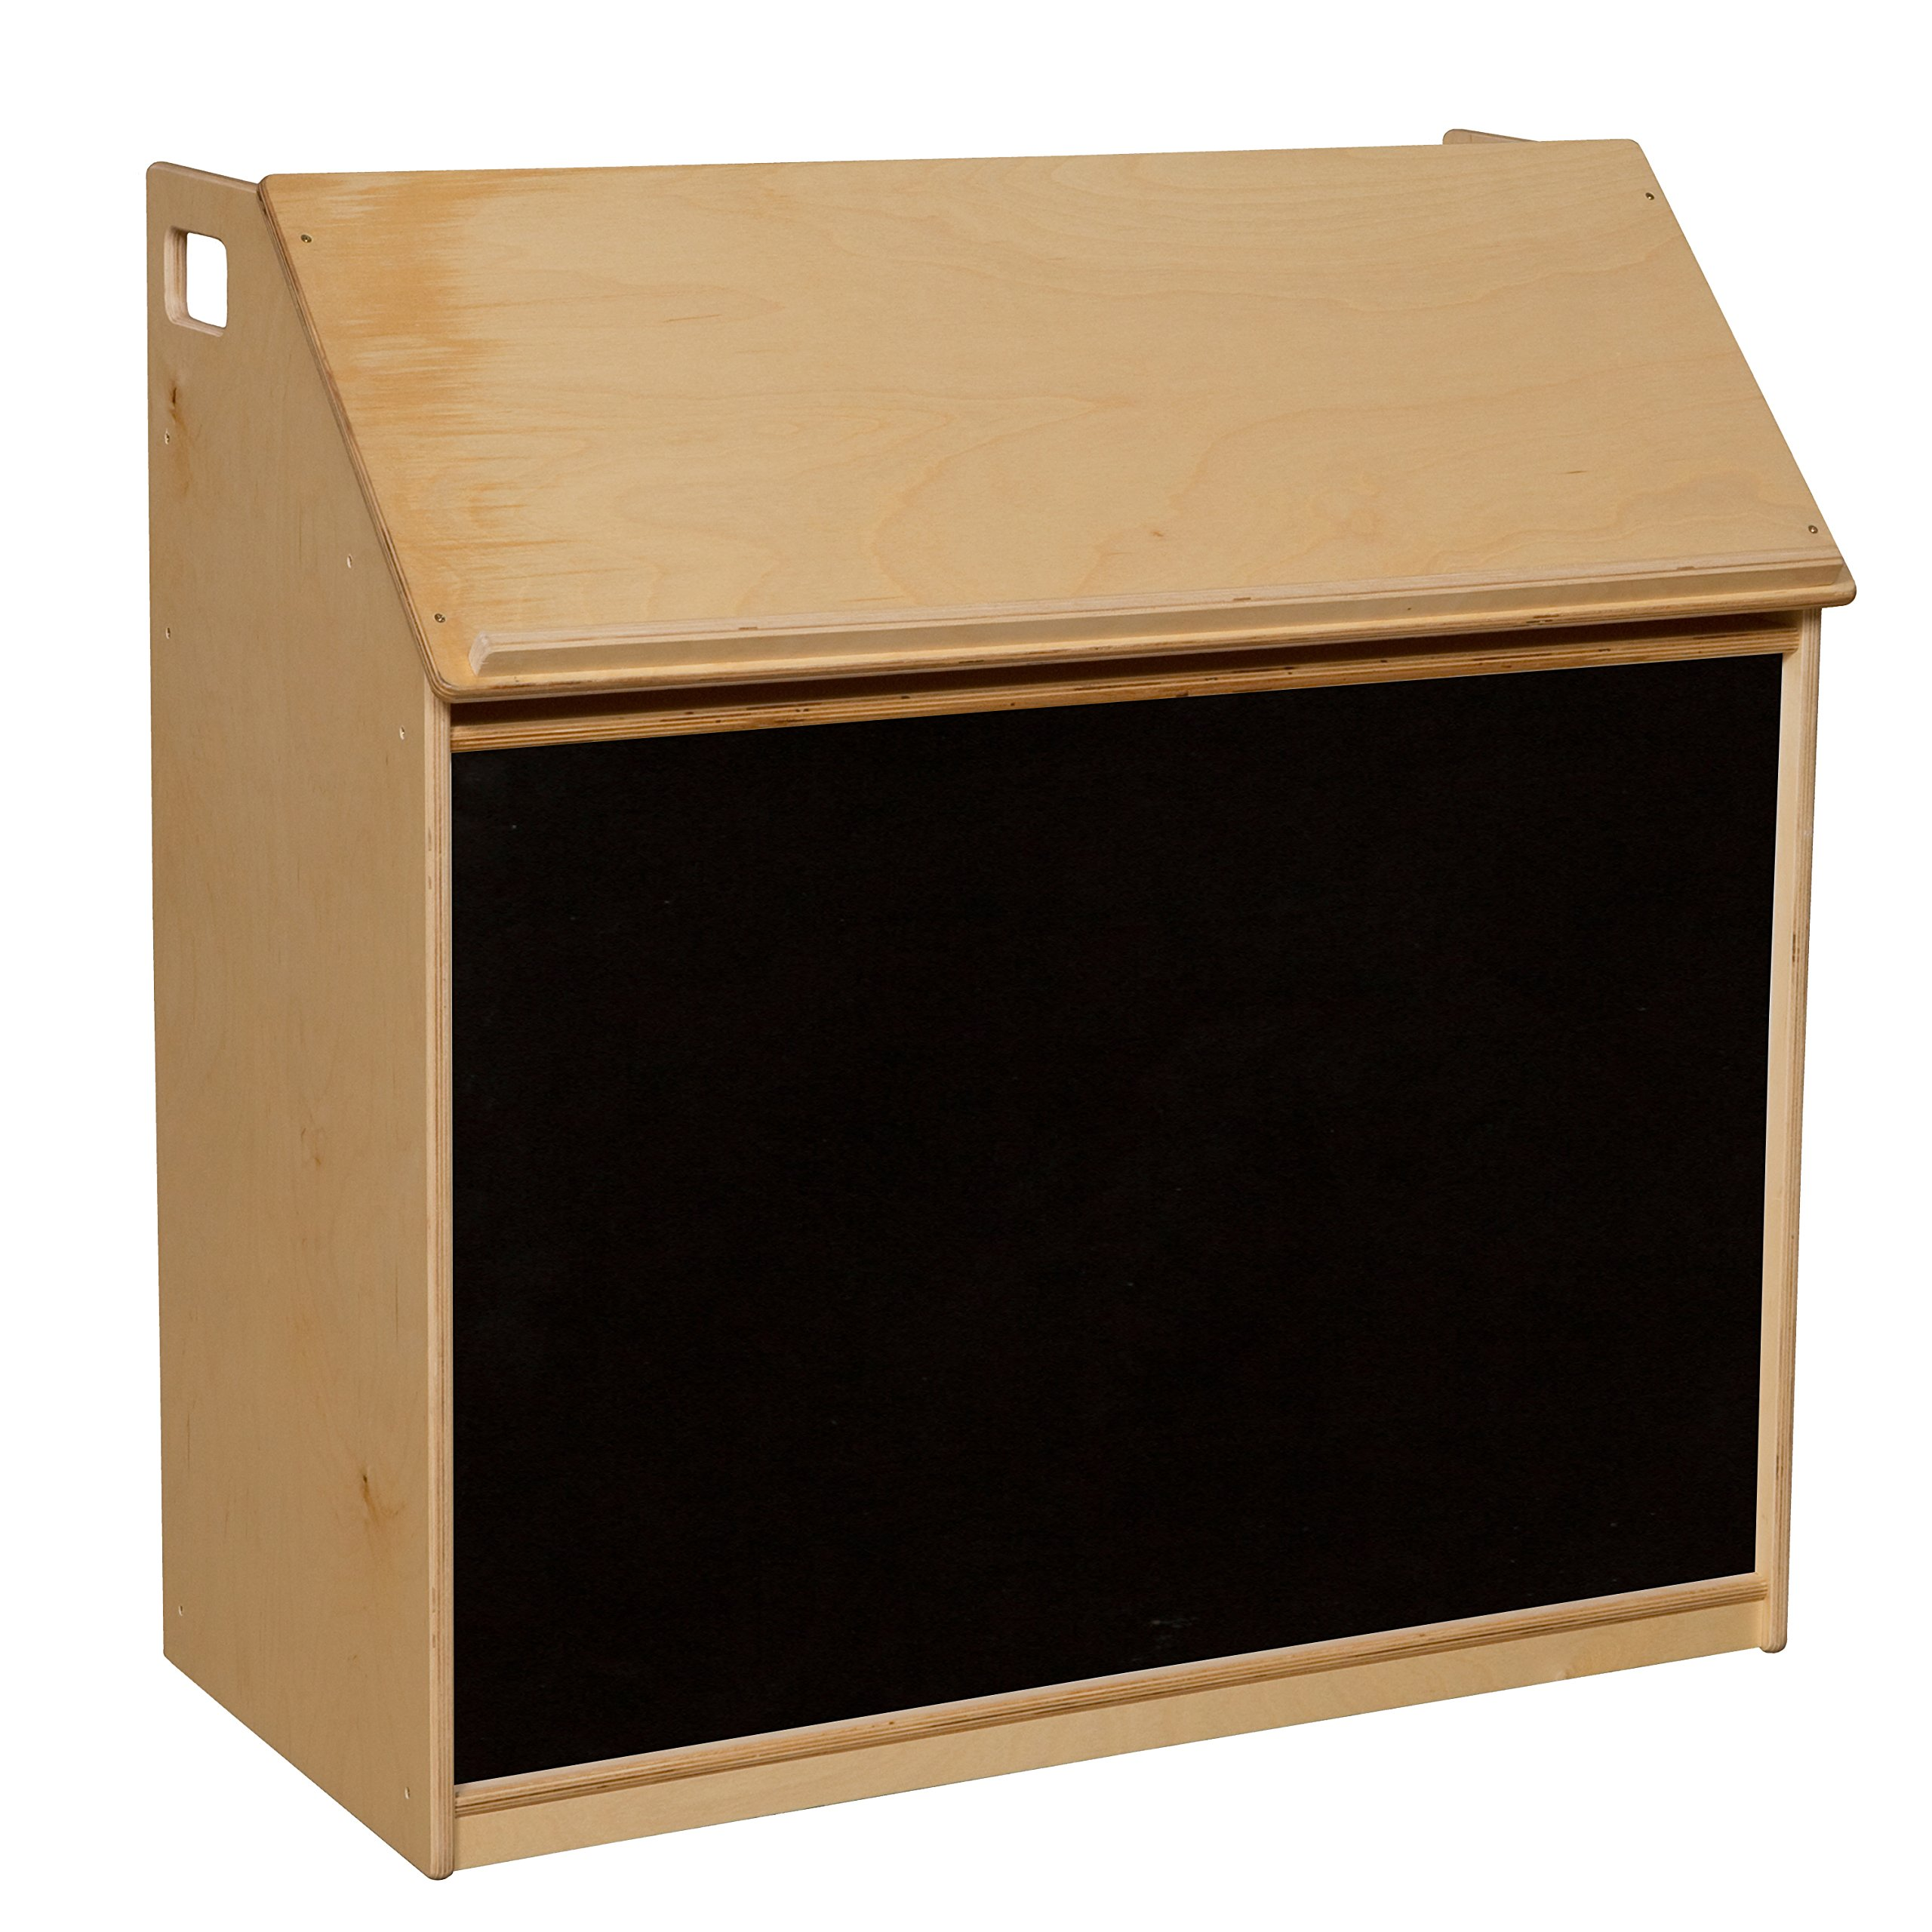 Wood Designs 990319FB Book Display with Flannel Board